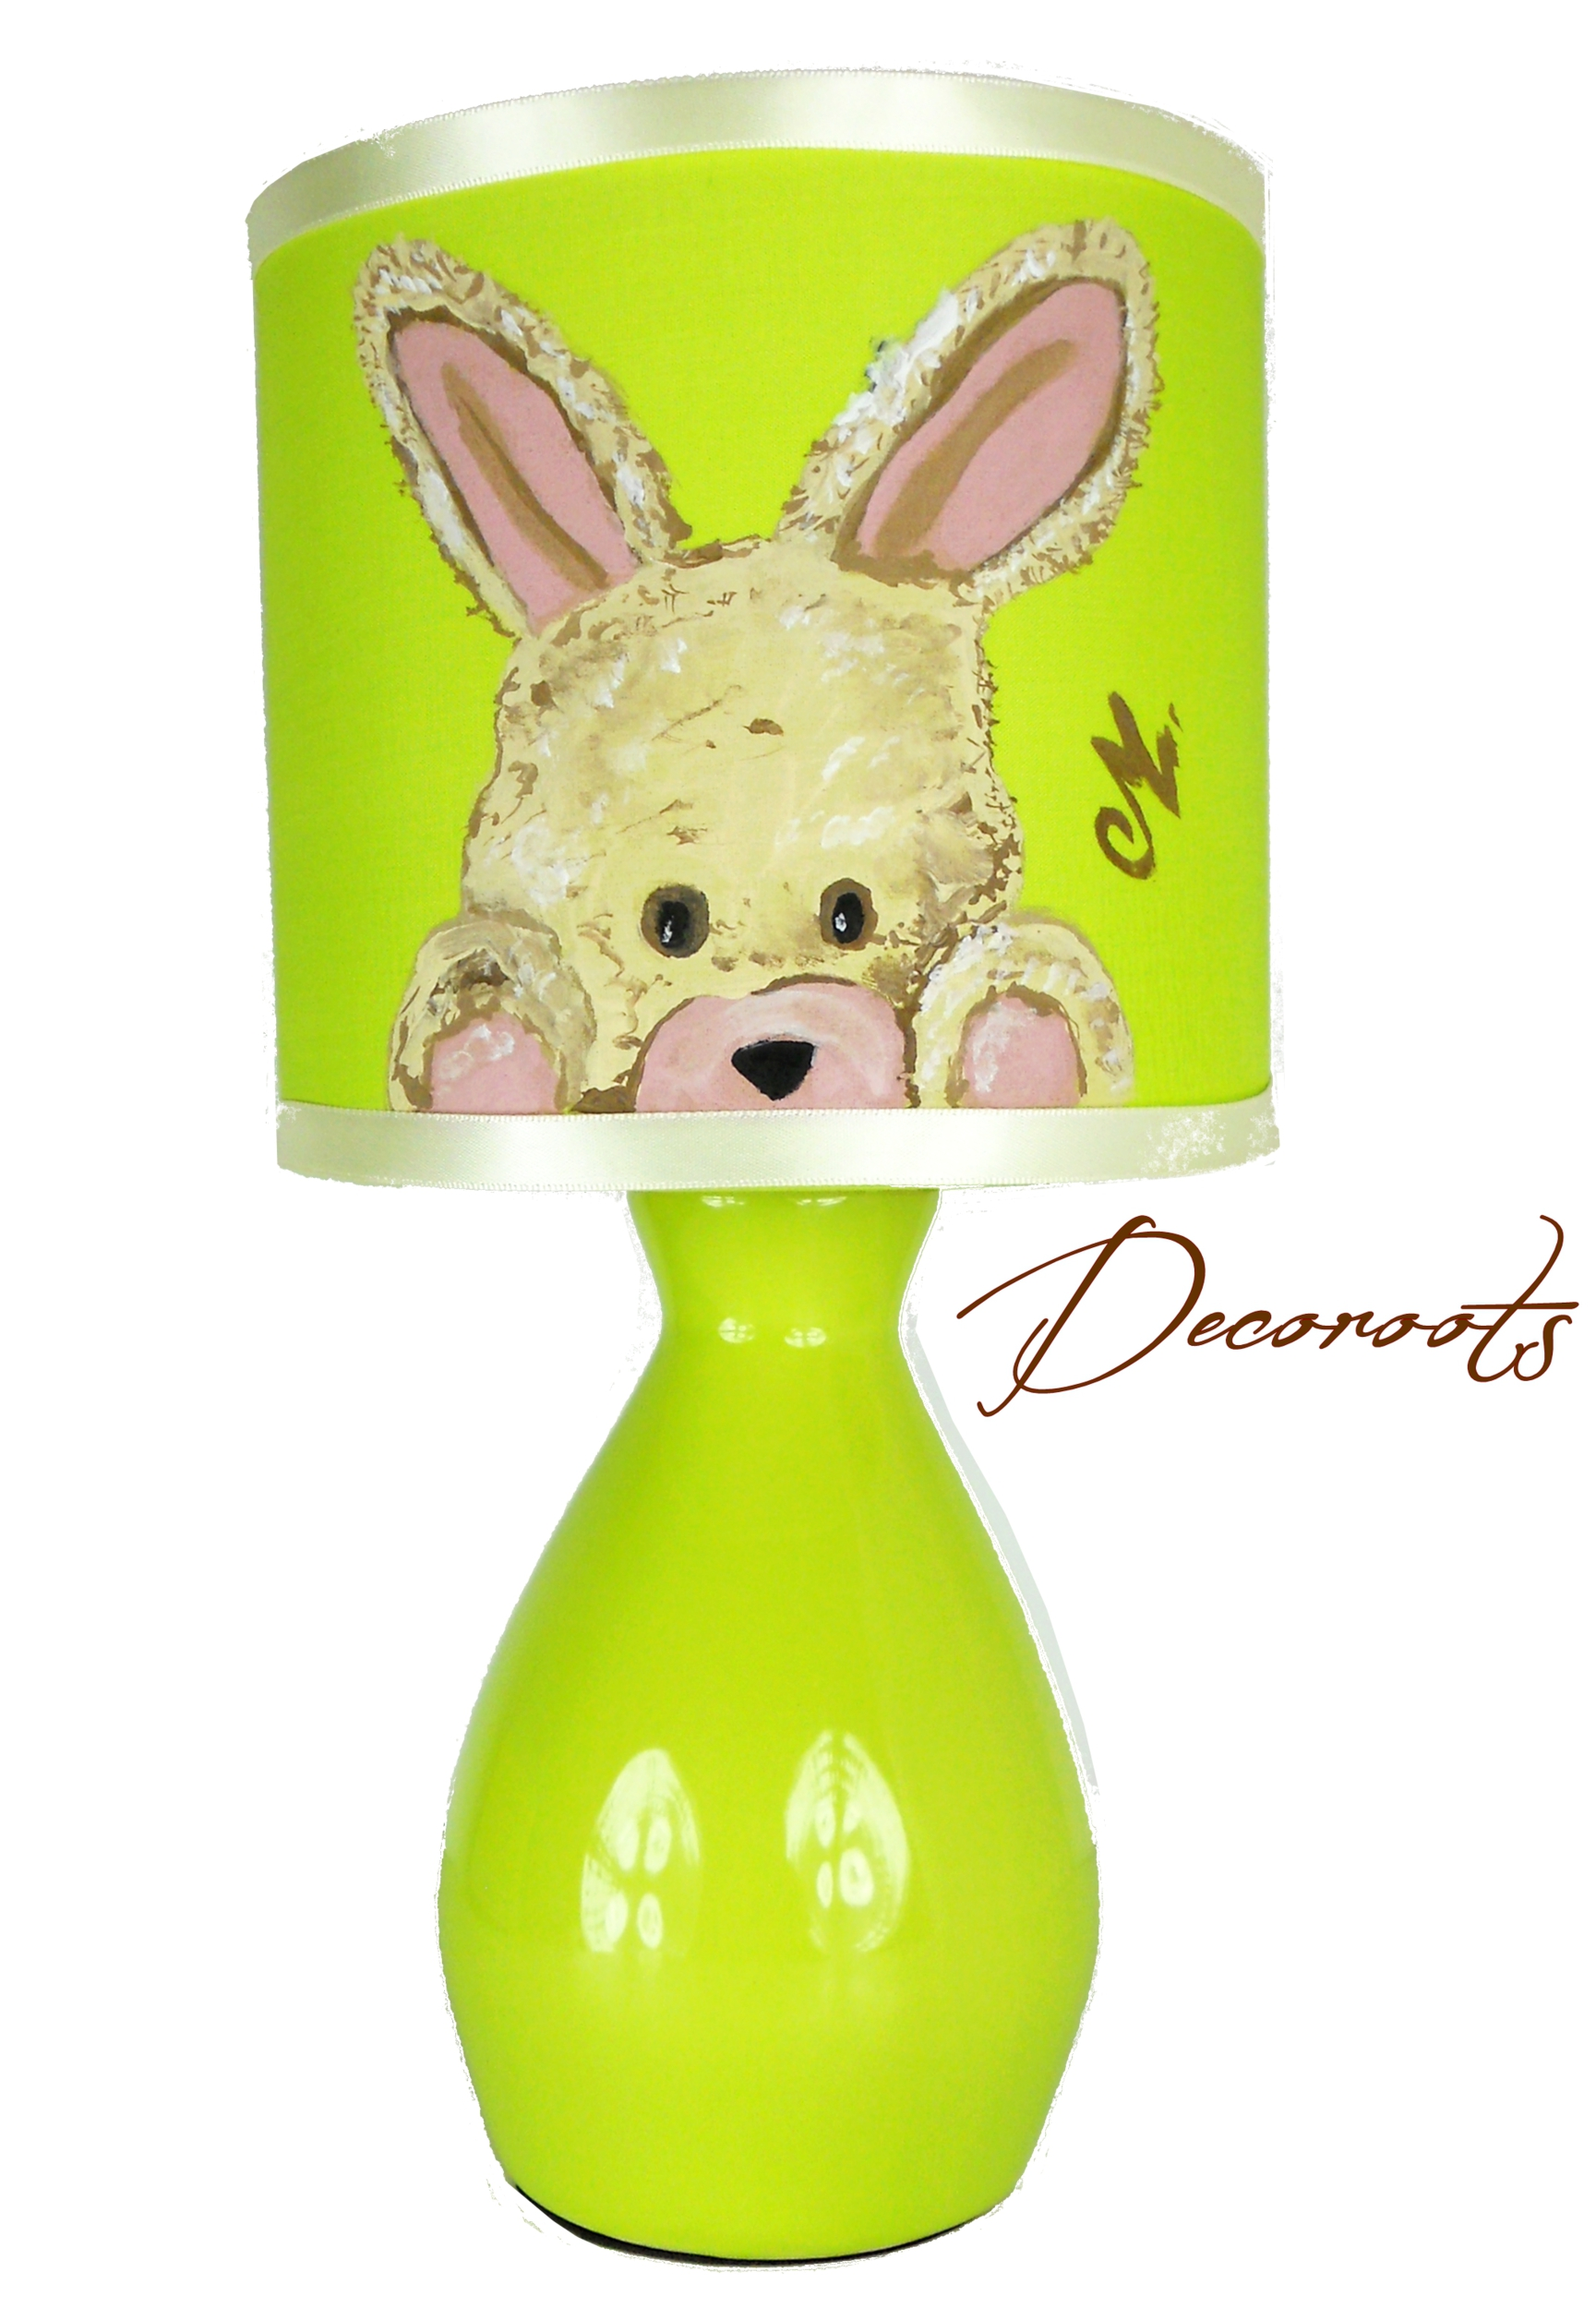 lampe de chevet lapin vert anis enfant b b luminaire. Black Bedroom Furniture Sets. Home Design Ideas